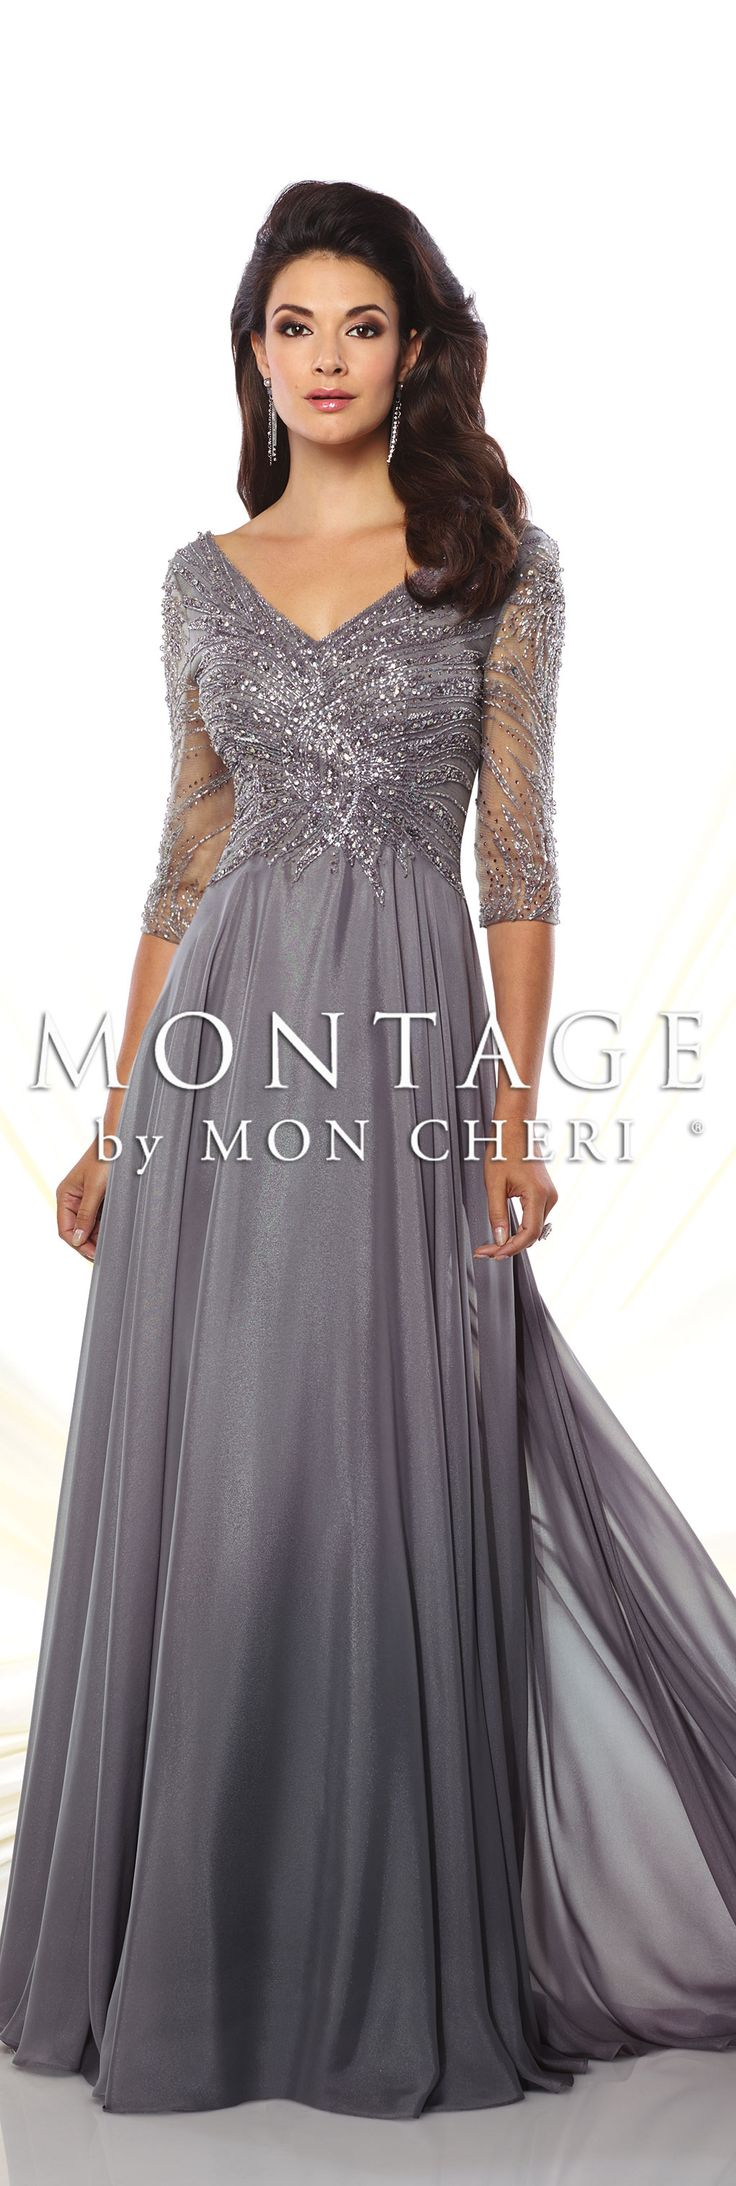 Montage by Mon Cheri Spring 2016 - Style No. 116950 #eveninggowns